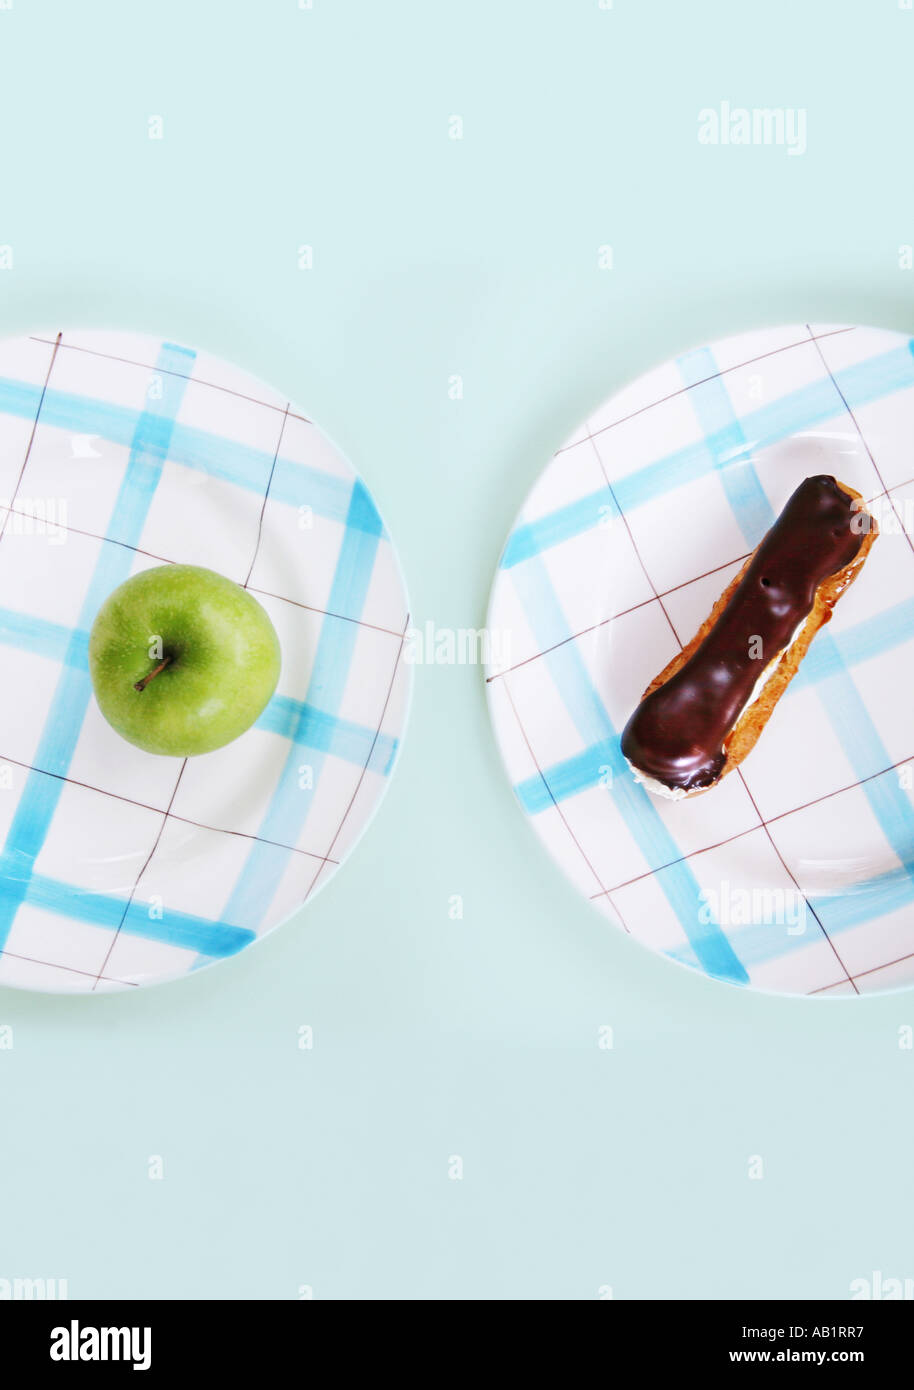 a chocolate eclair and an apple on separate plates - Stock Image